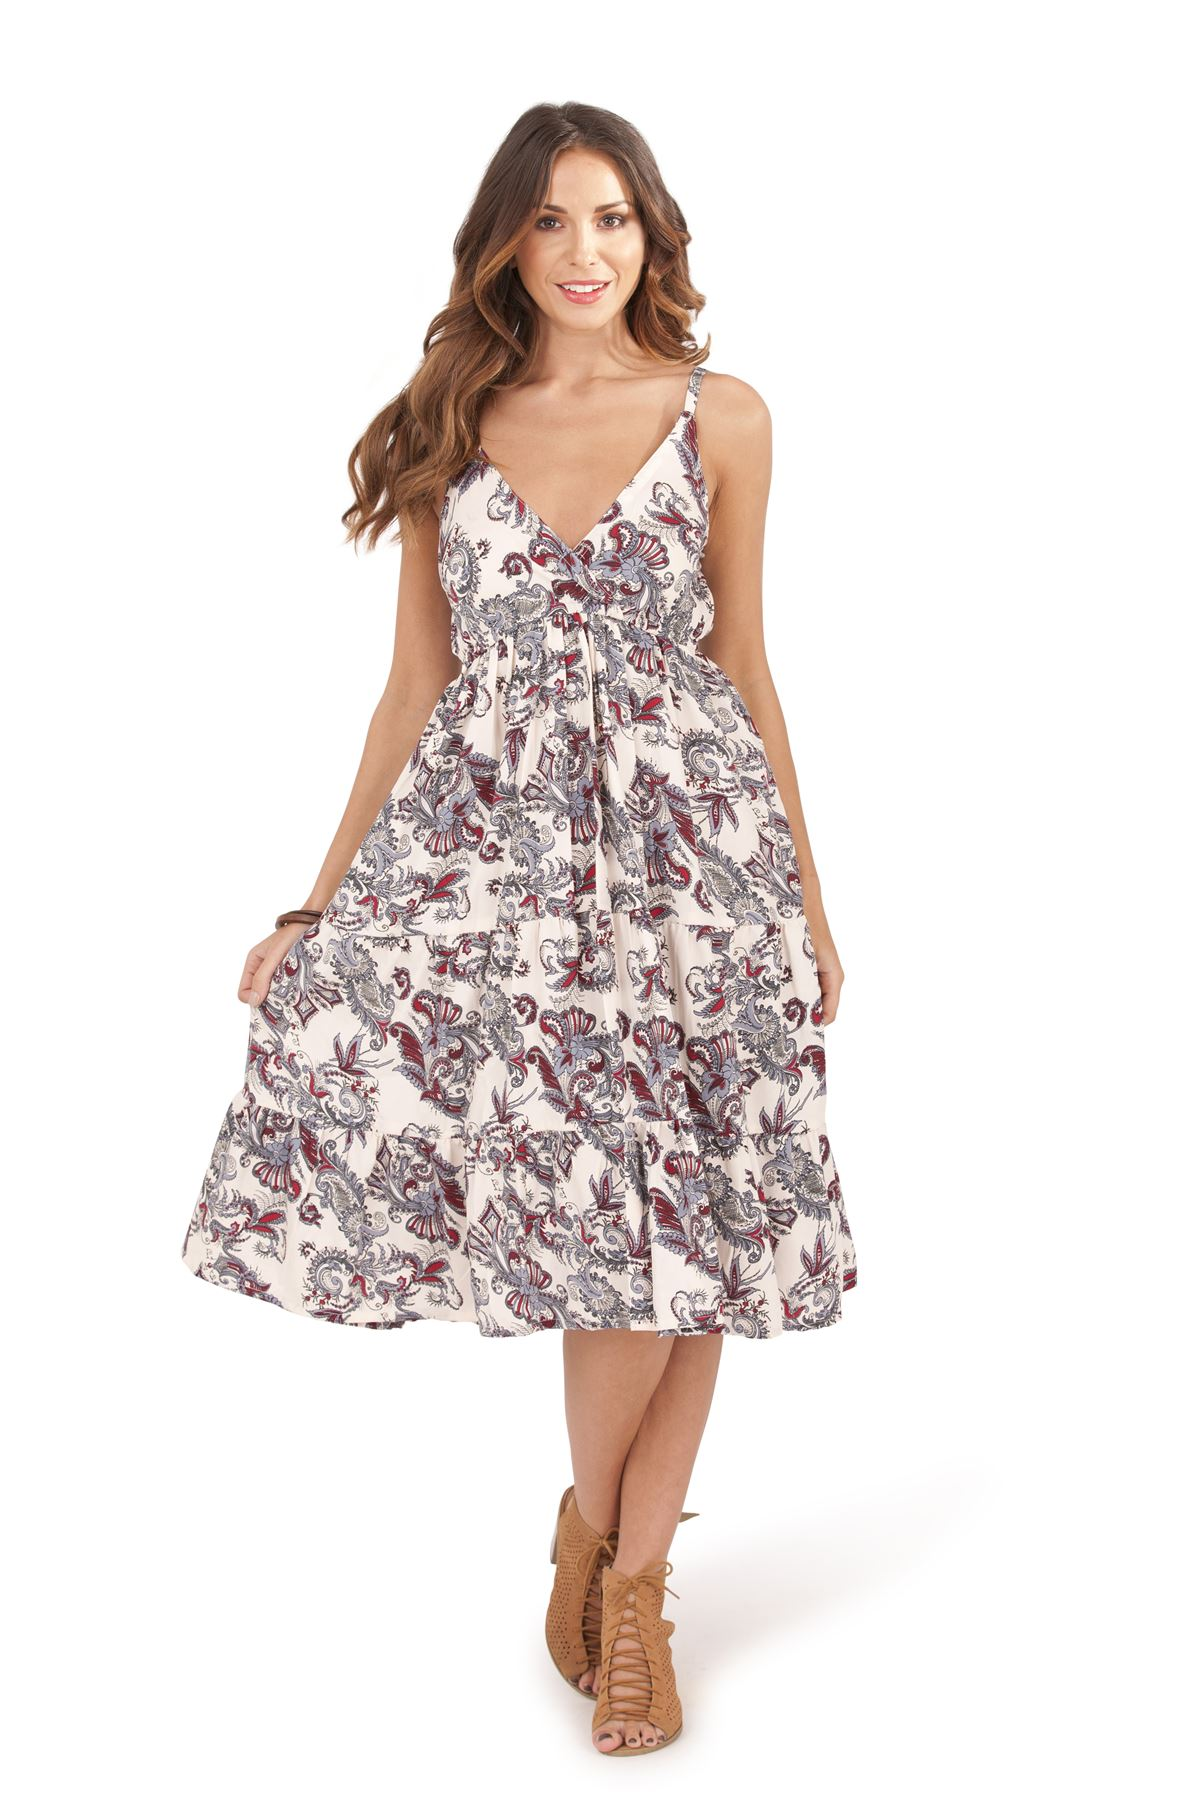 Find great deals on eBay for light summer dresses. Shop with confidence.